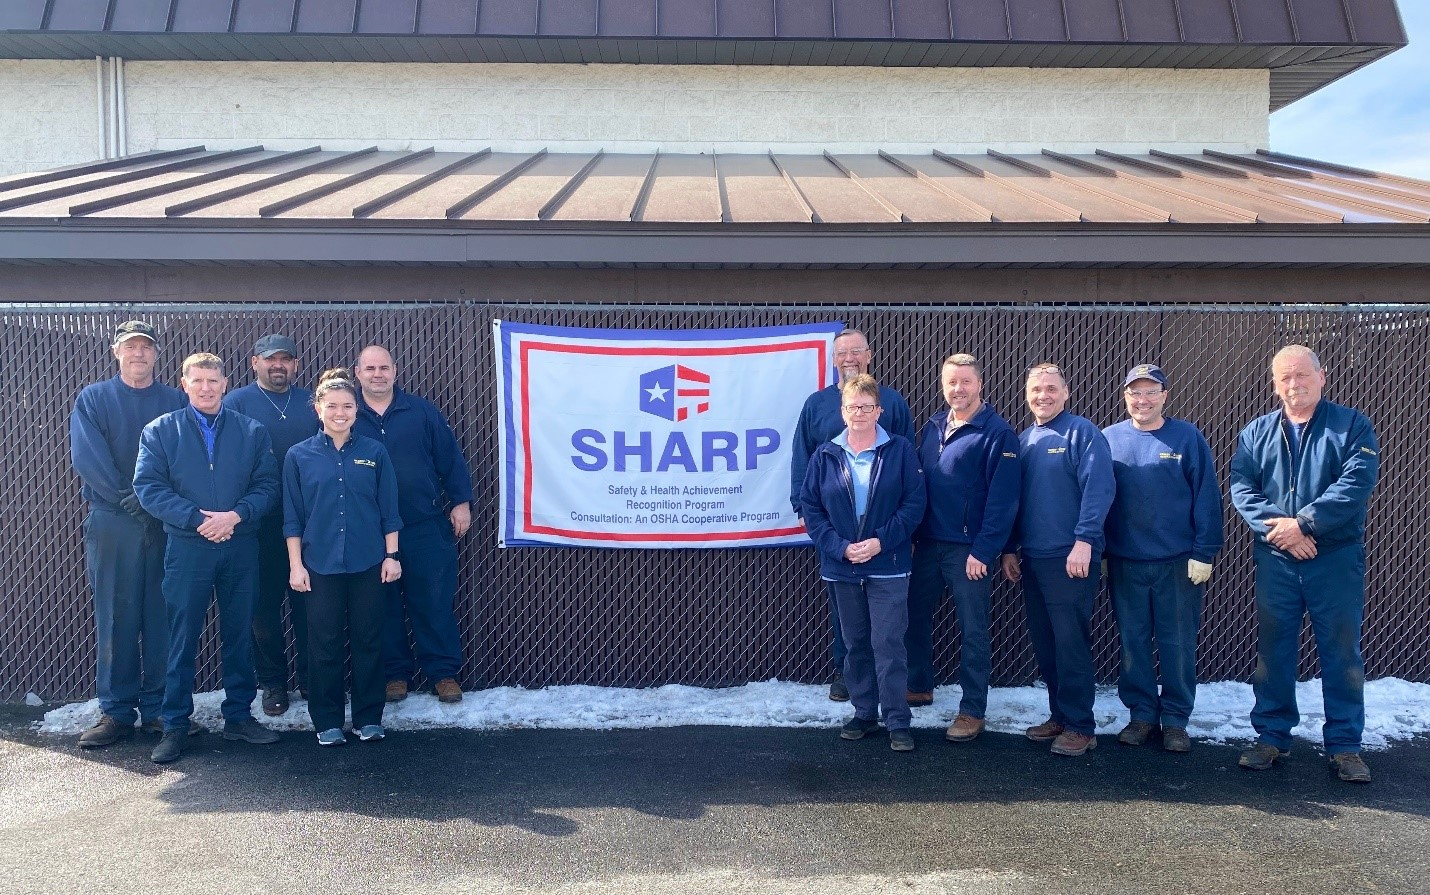 Warren Tire Service Center Works with New York On-Site Consultation Program to Improve Workplace Safety and Health